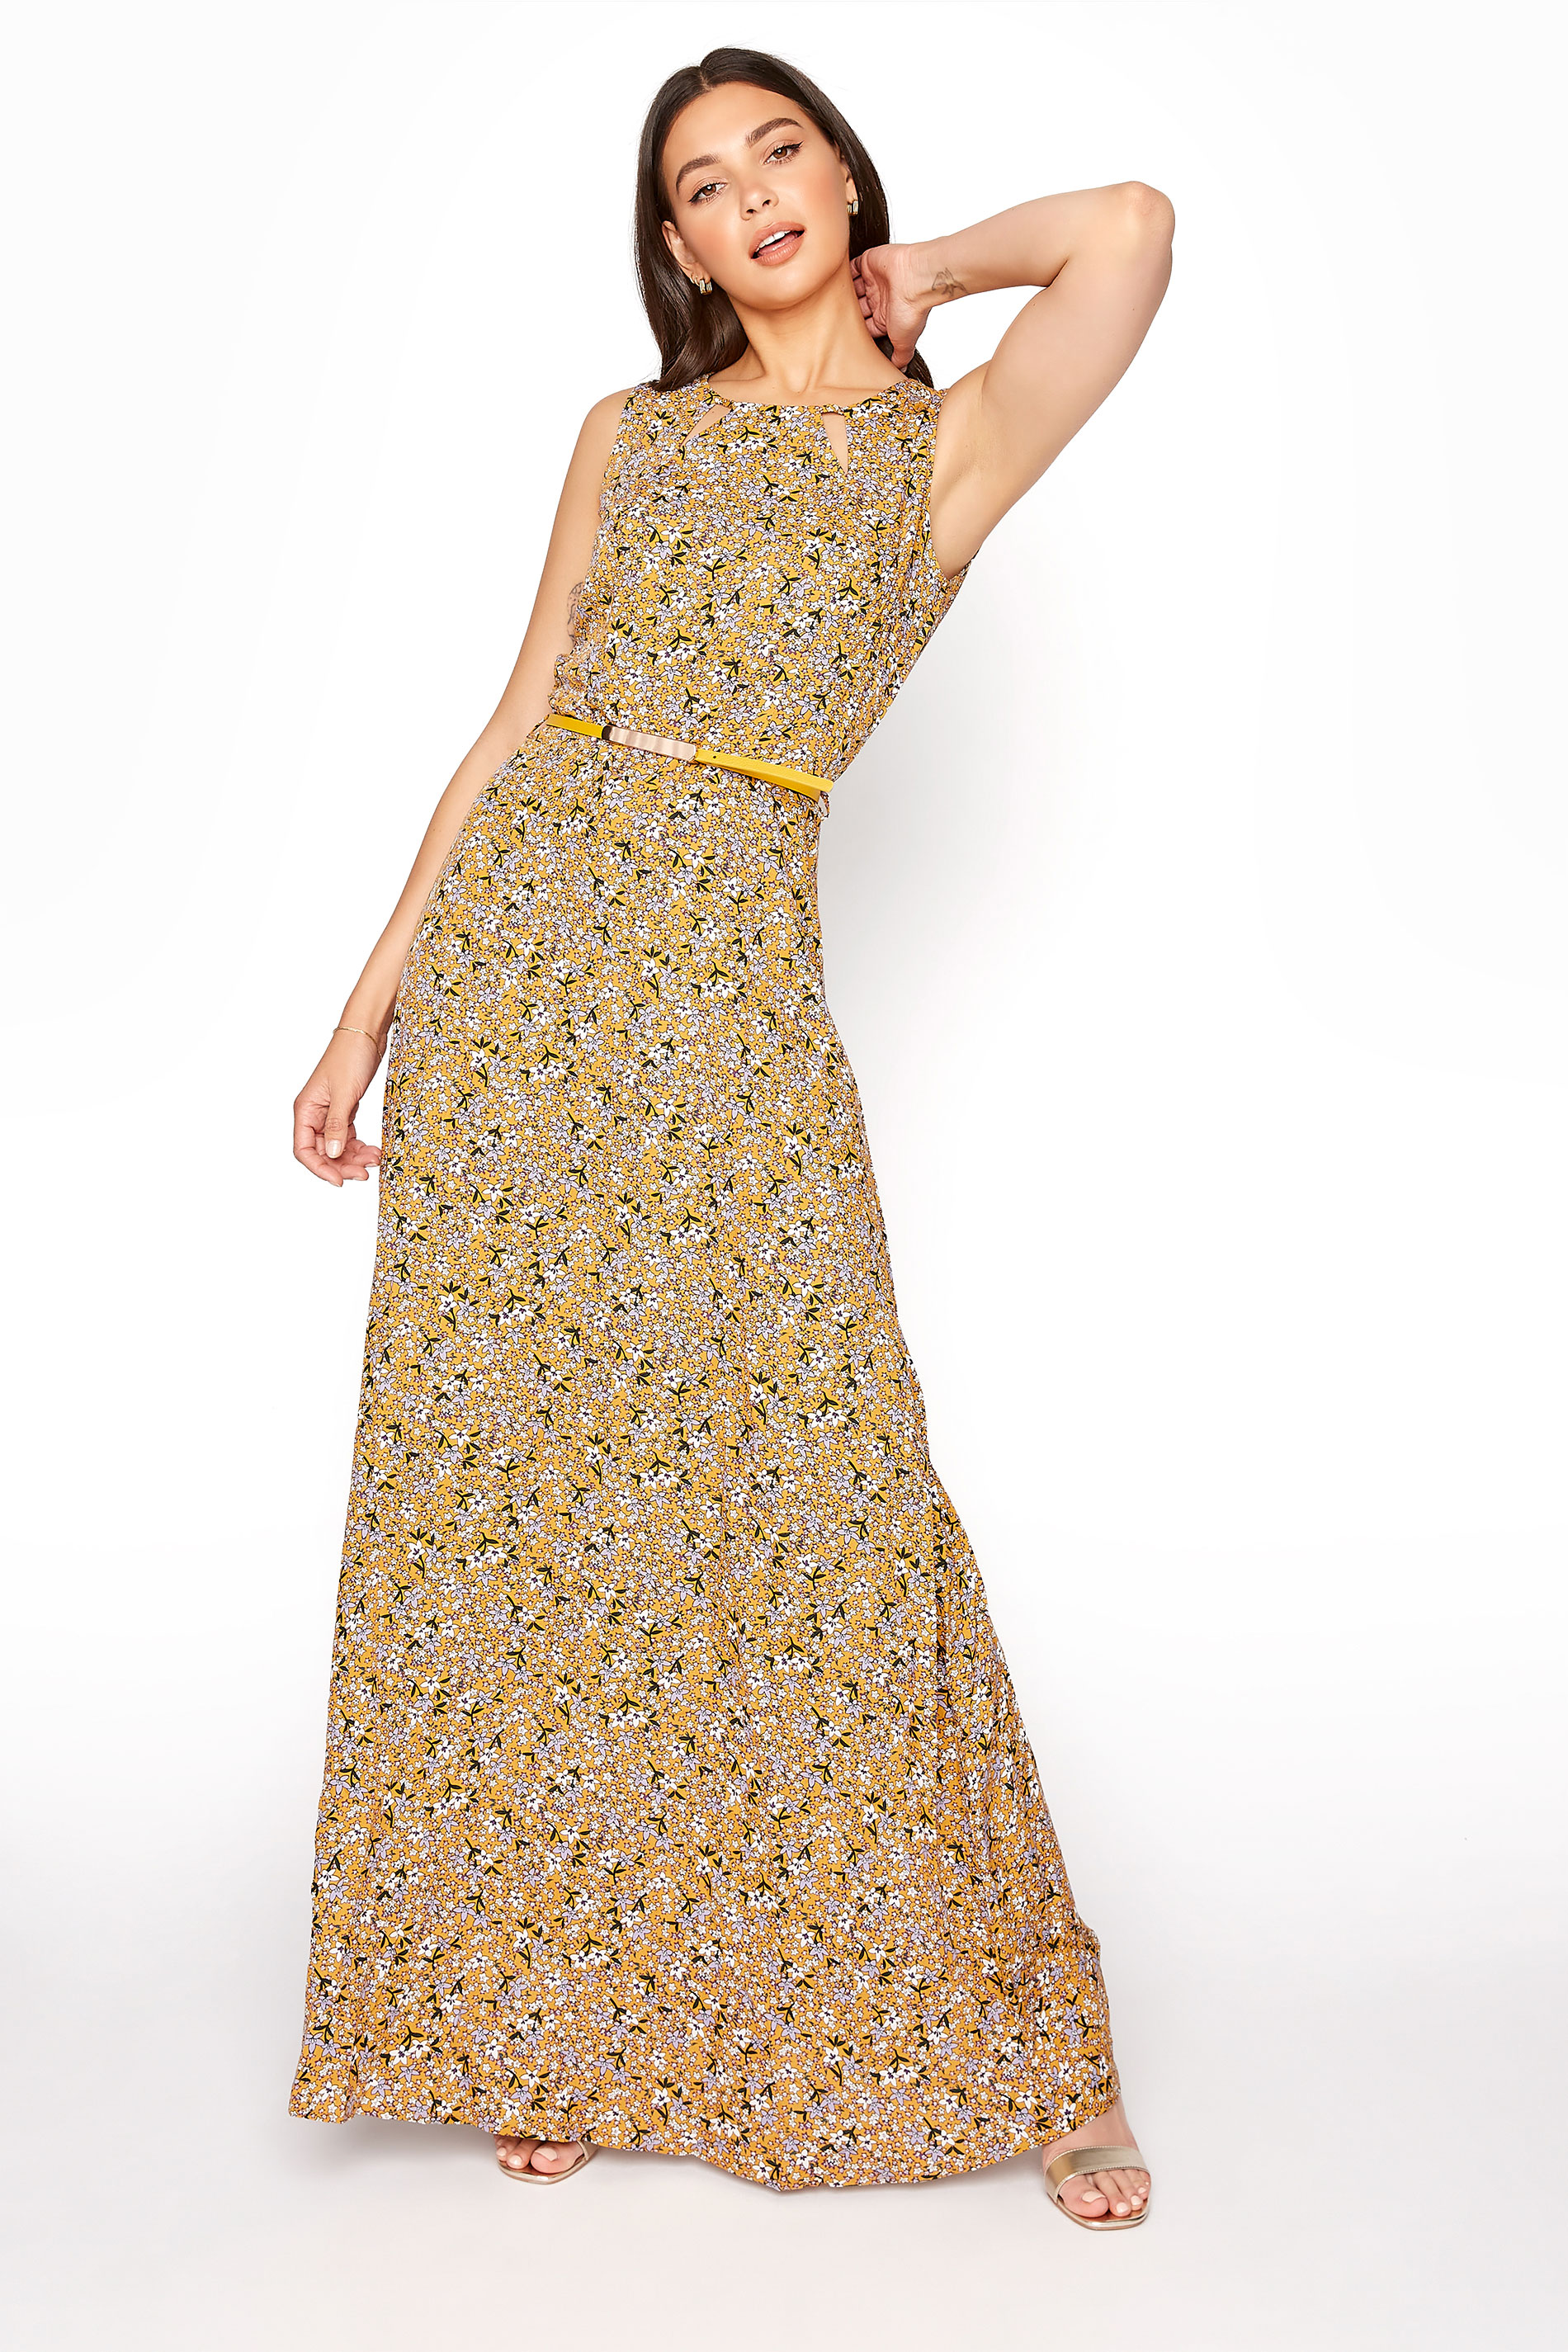 LTS Yellow Ditsy Sleeveless Fitted Maxi Dress_A.jpg